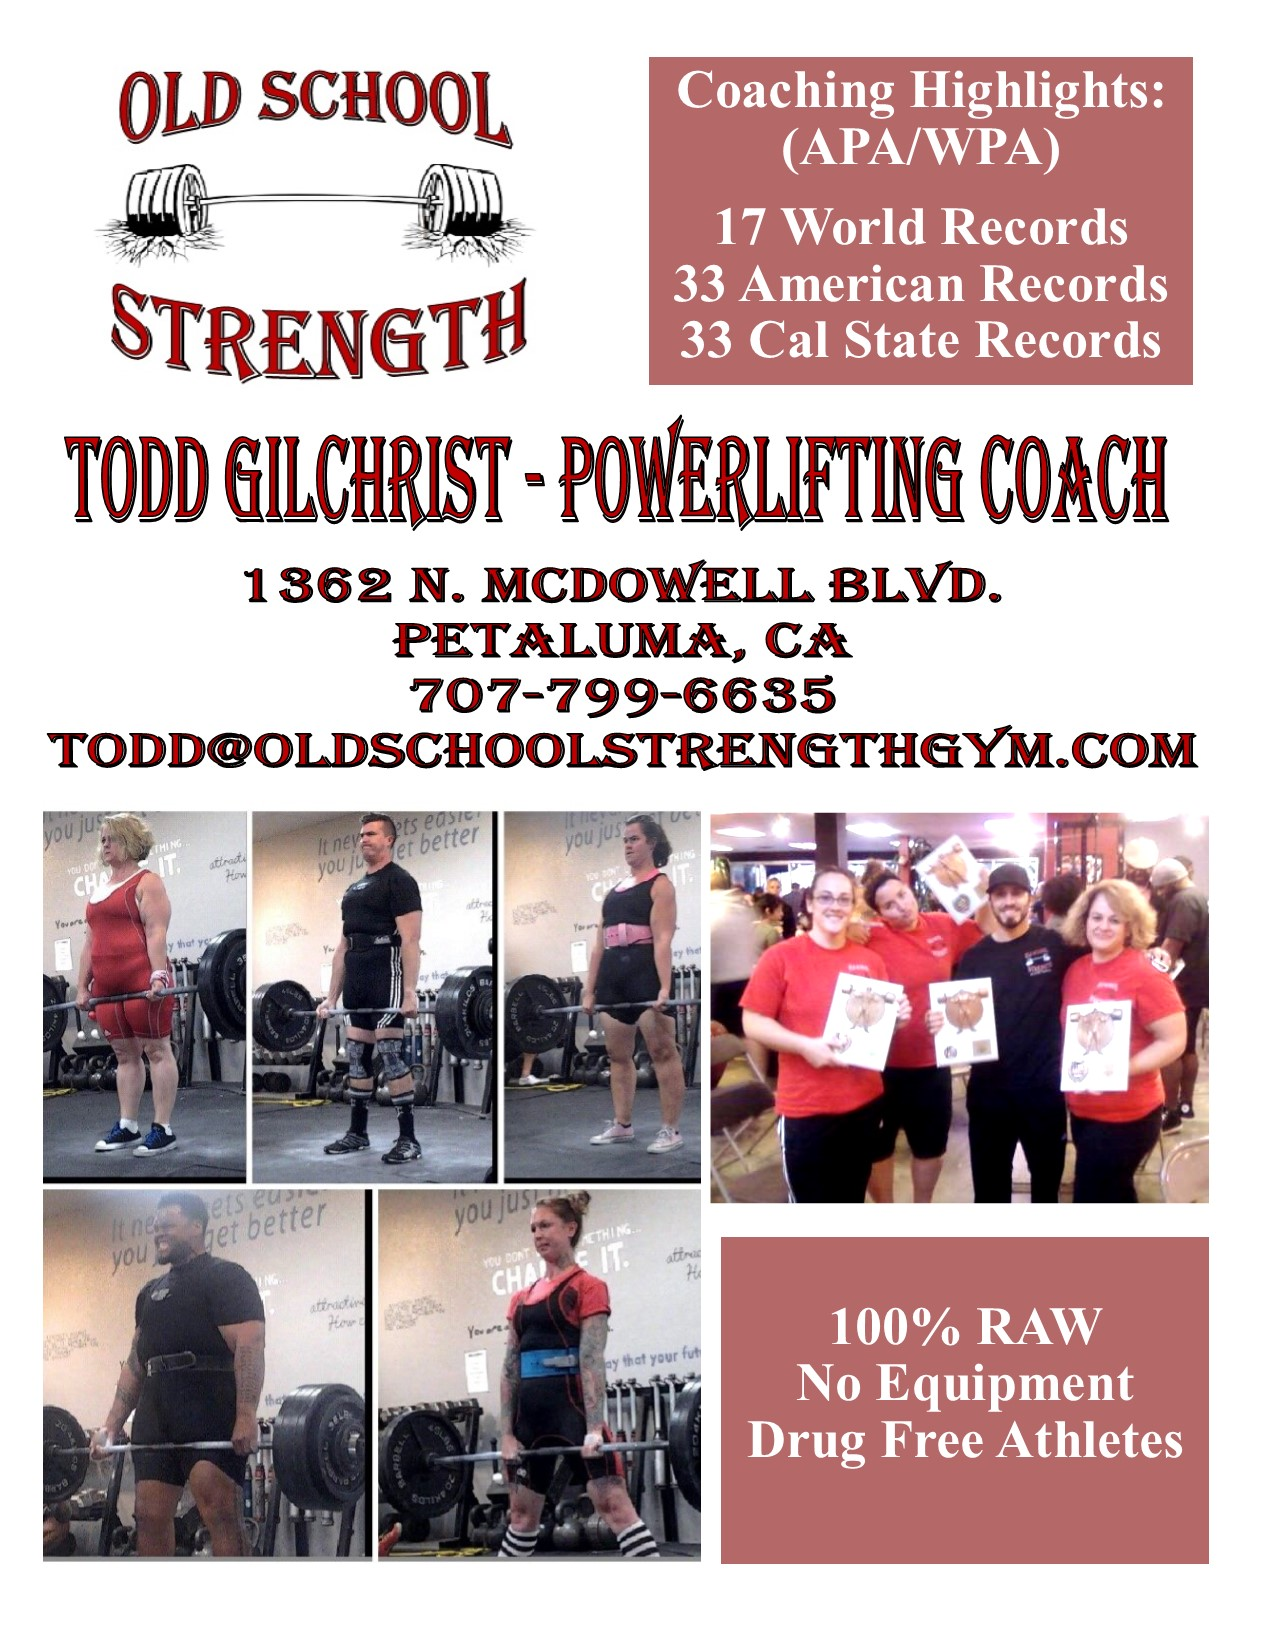 powerlifting coach weightlifting strength certification competitive powerlifter gone performance usa through sports